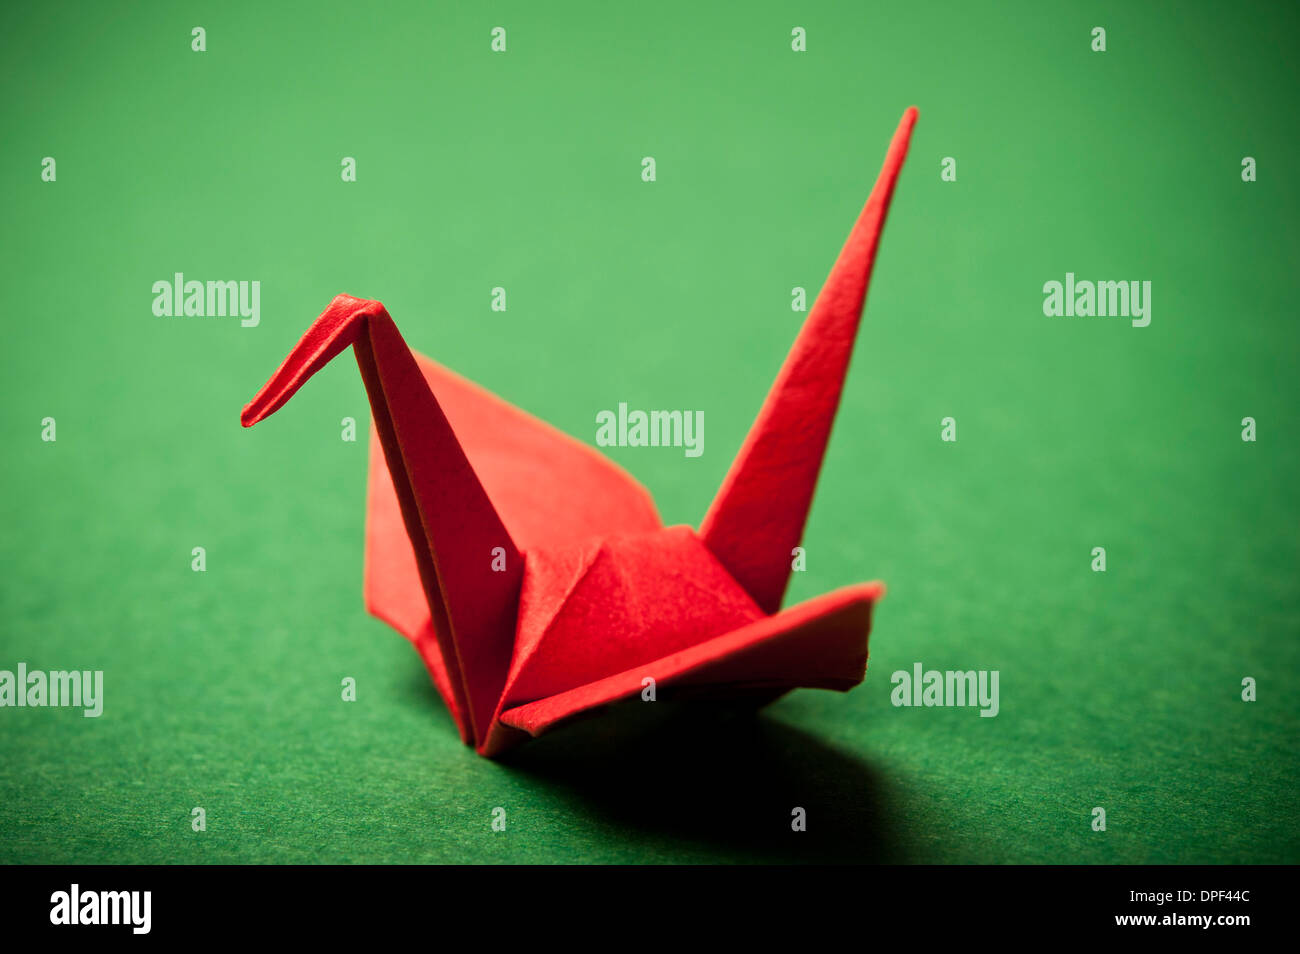 red origami bird - Stock Image